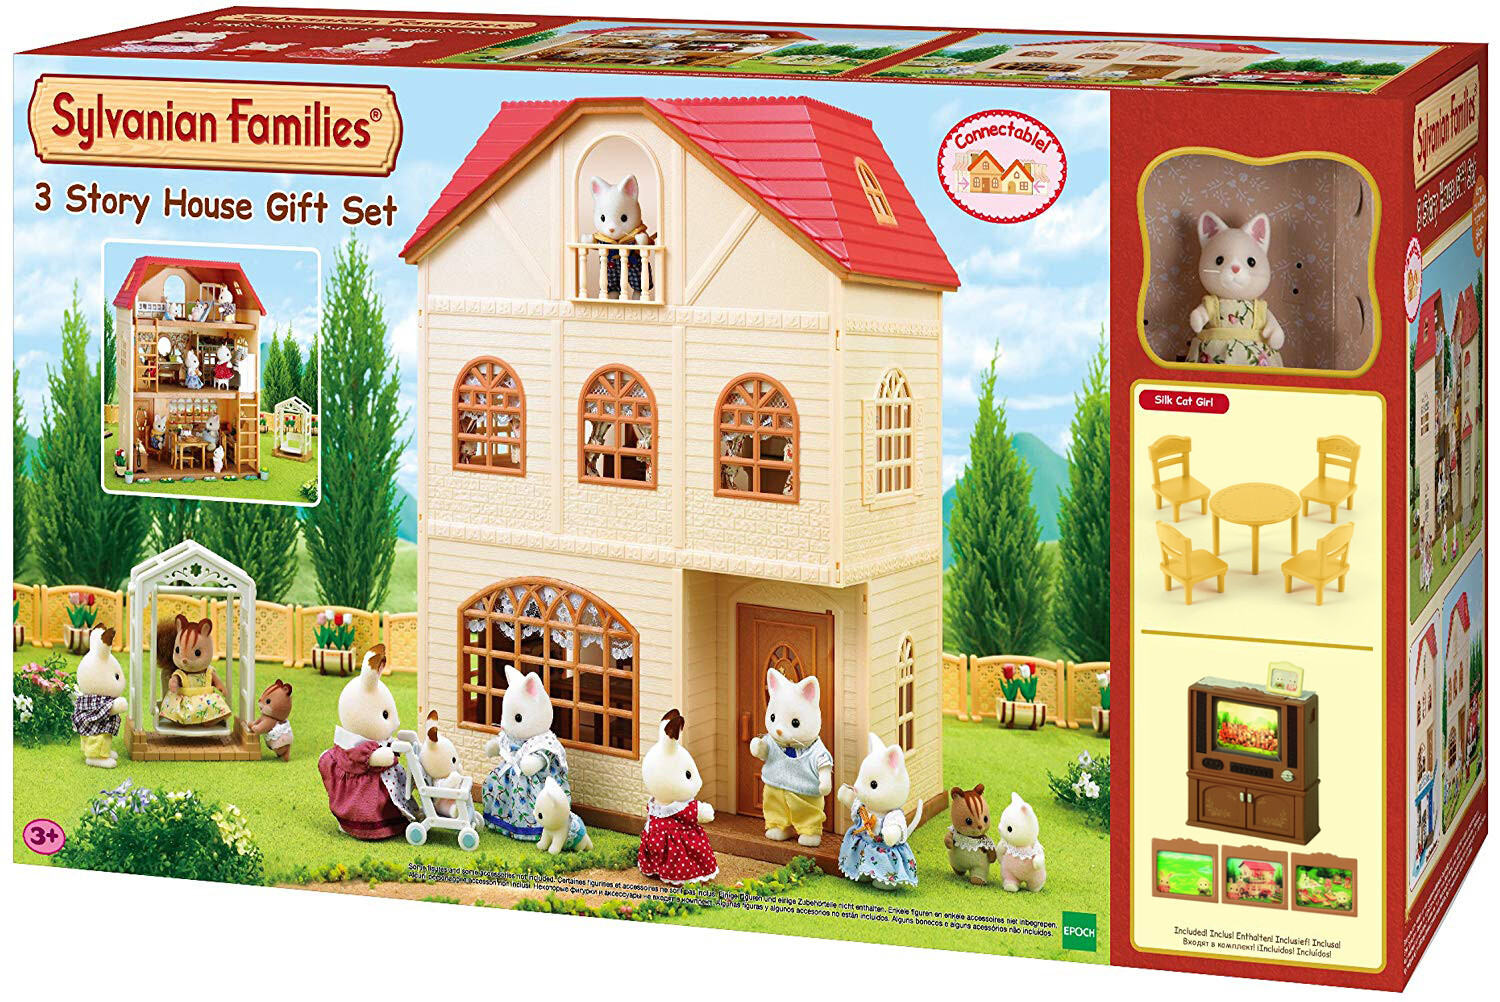 SYL.FAM 3 Story House